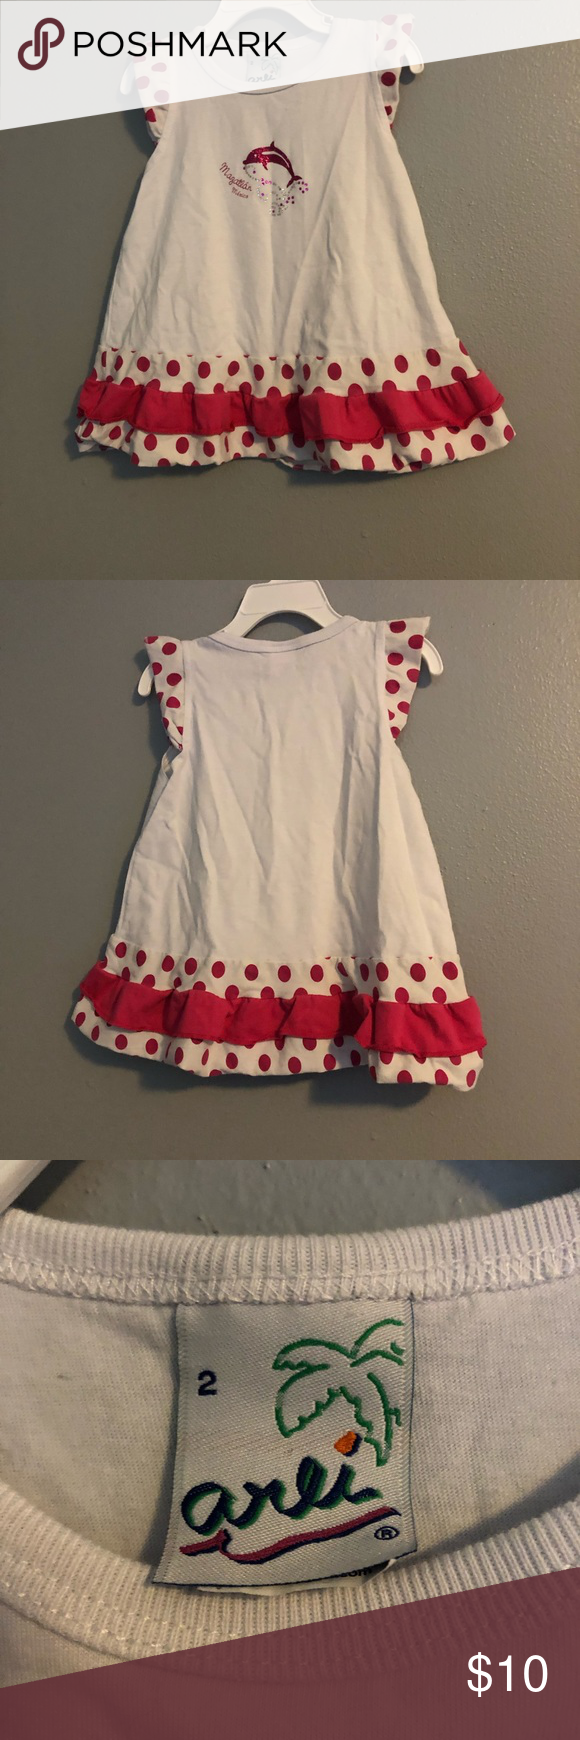 2T girls dress Purchased in Mexico  2t Dresses Casual - #casual #dress #Dresses ... - #Casual #dress #dresses #Girls #mexico #purchased